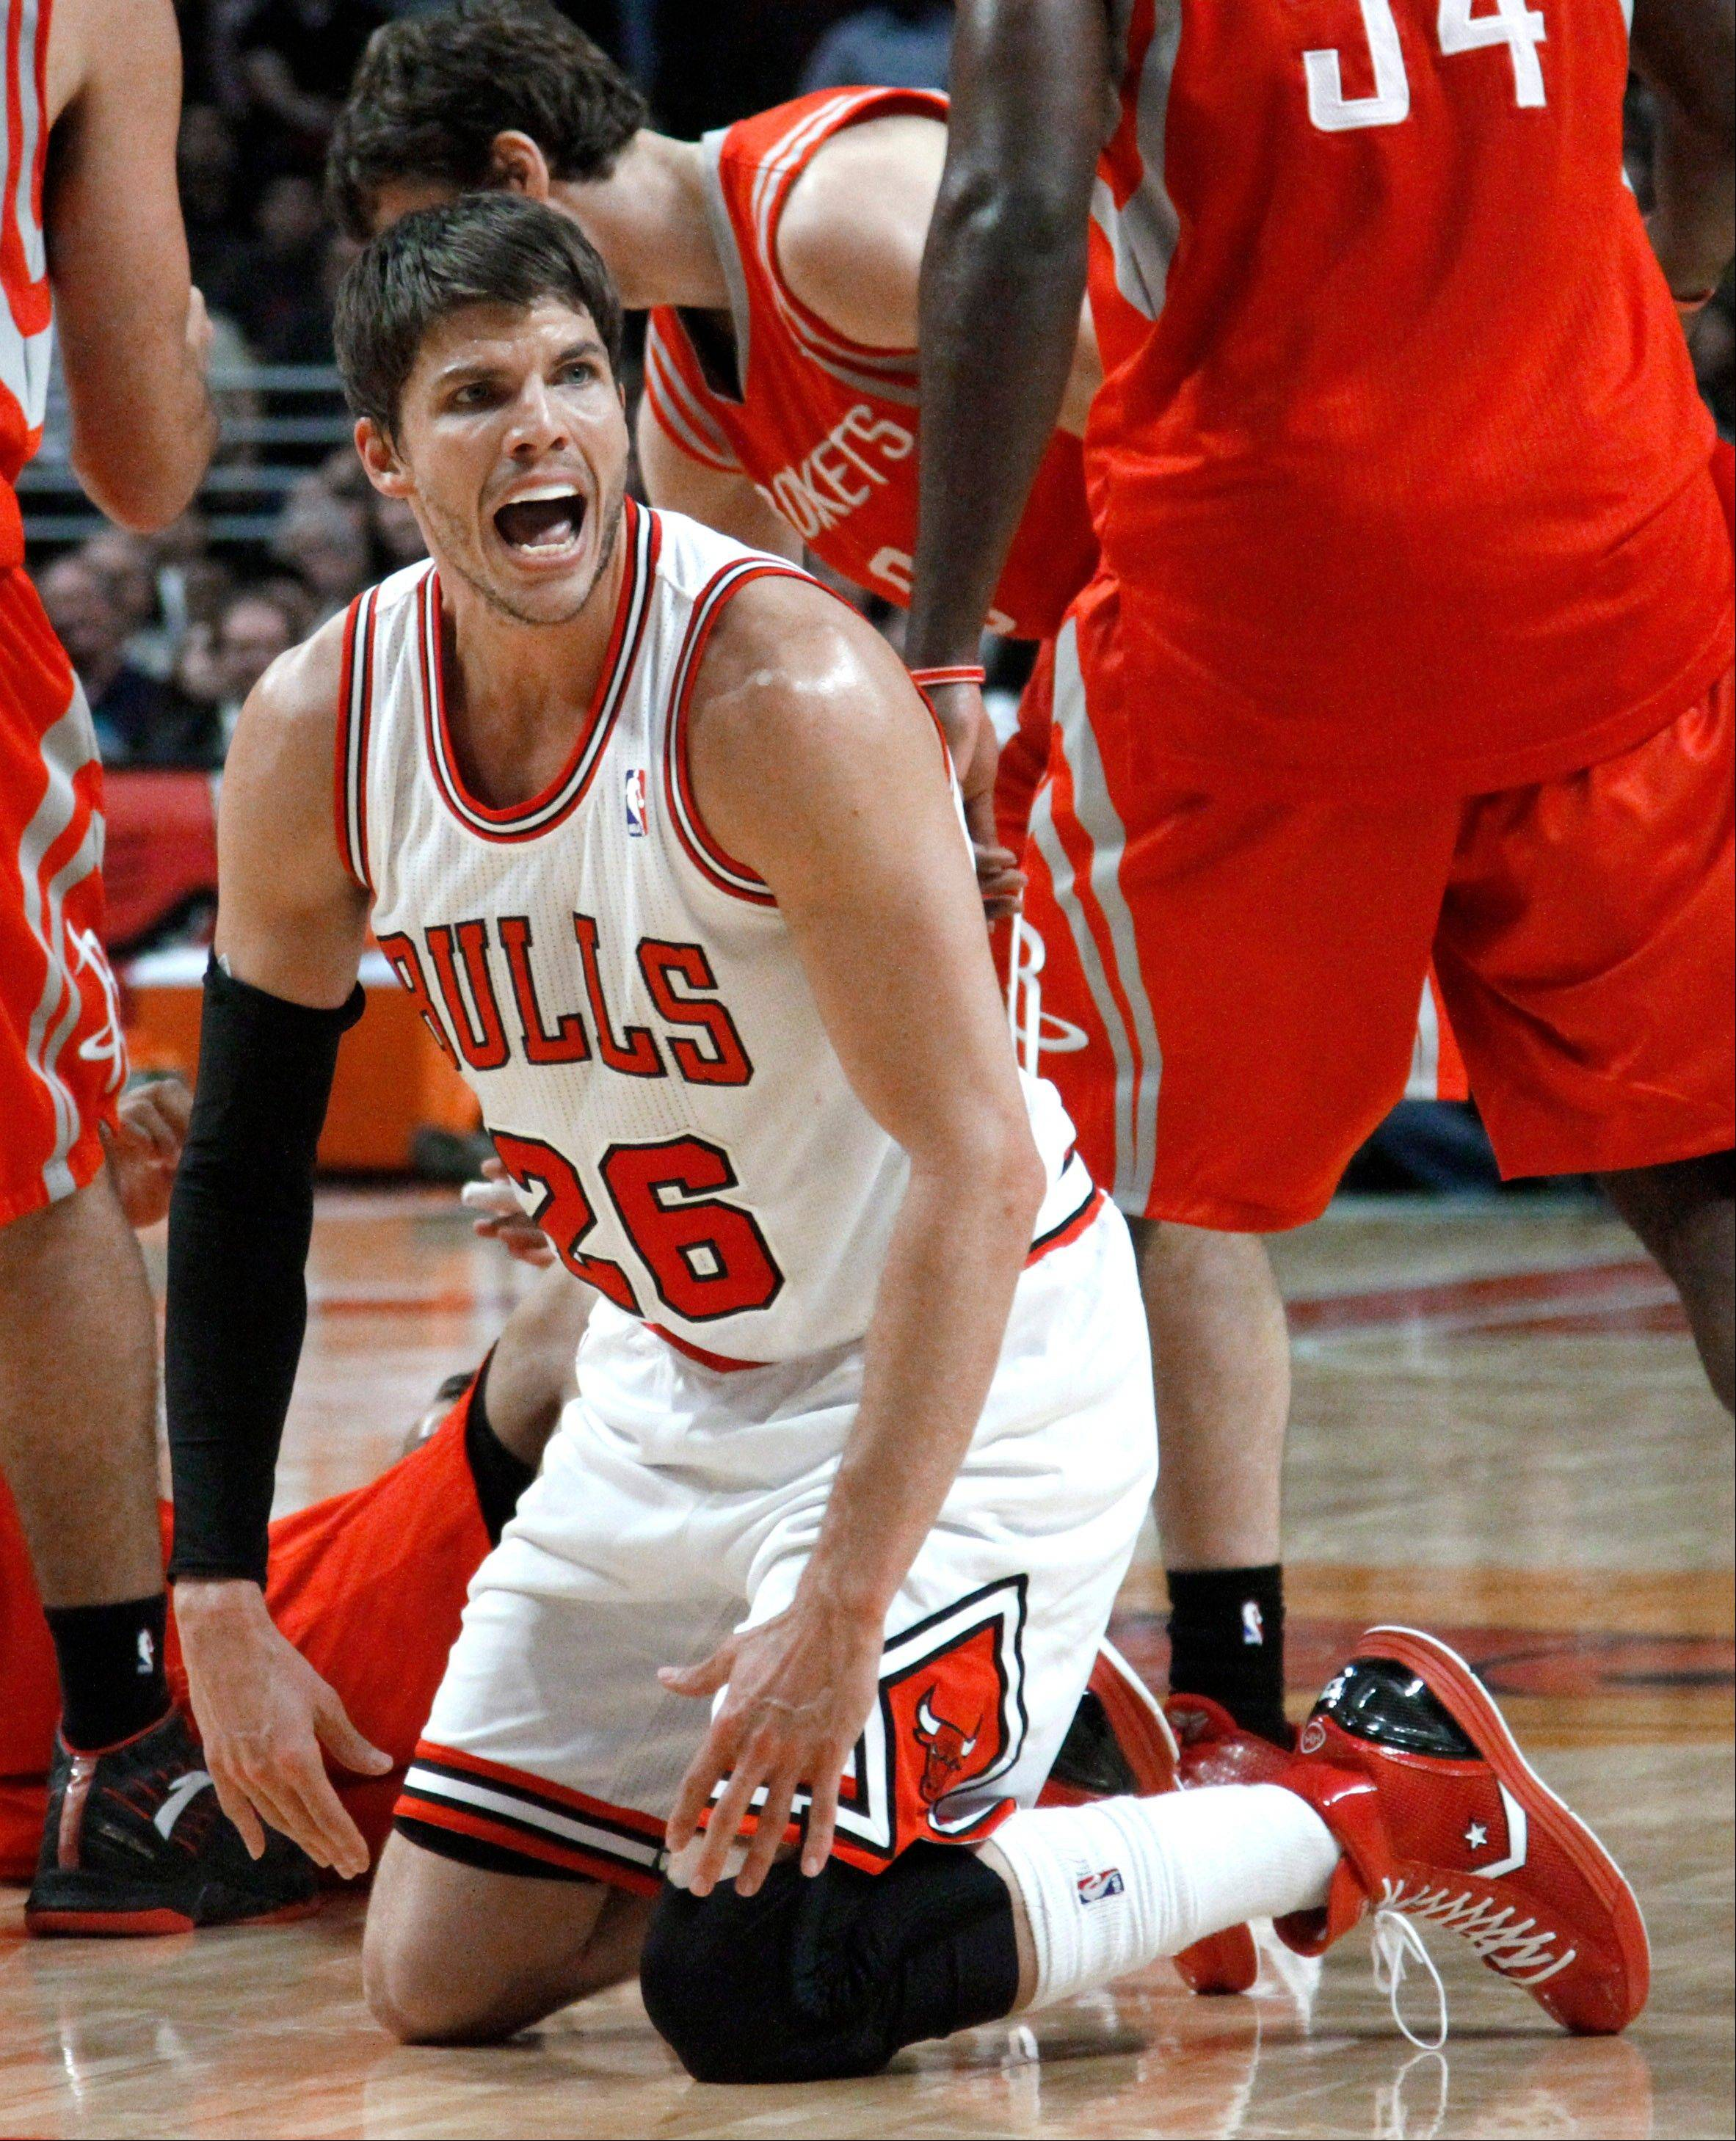 Chicago Bulls forward Kyle Korver complains to a referee after he was called for a loose ball foul, during the second half of an NBA basketball game against the Houston Rockets, Monday, April 2, 2012, in Chicago. The Rockets won 99-93.